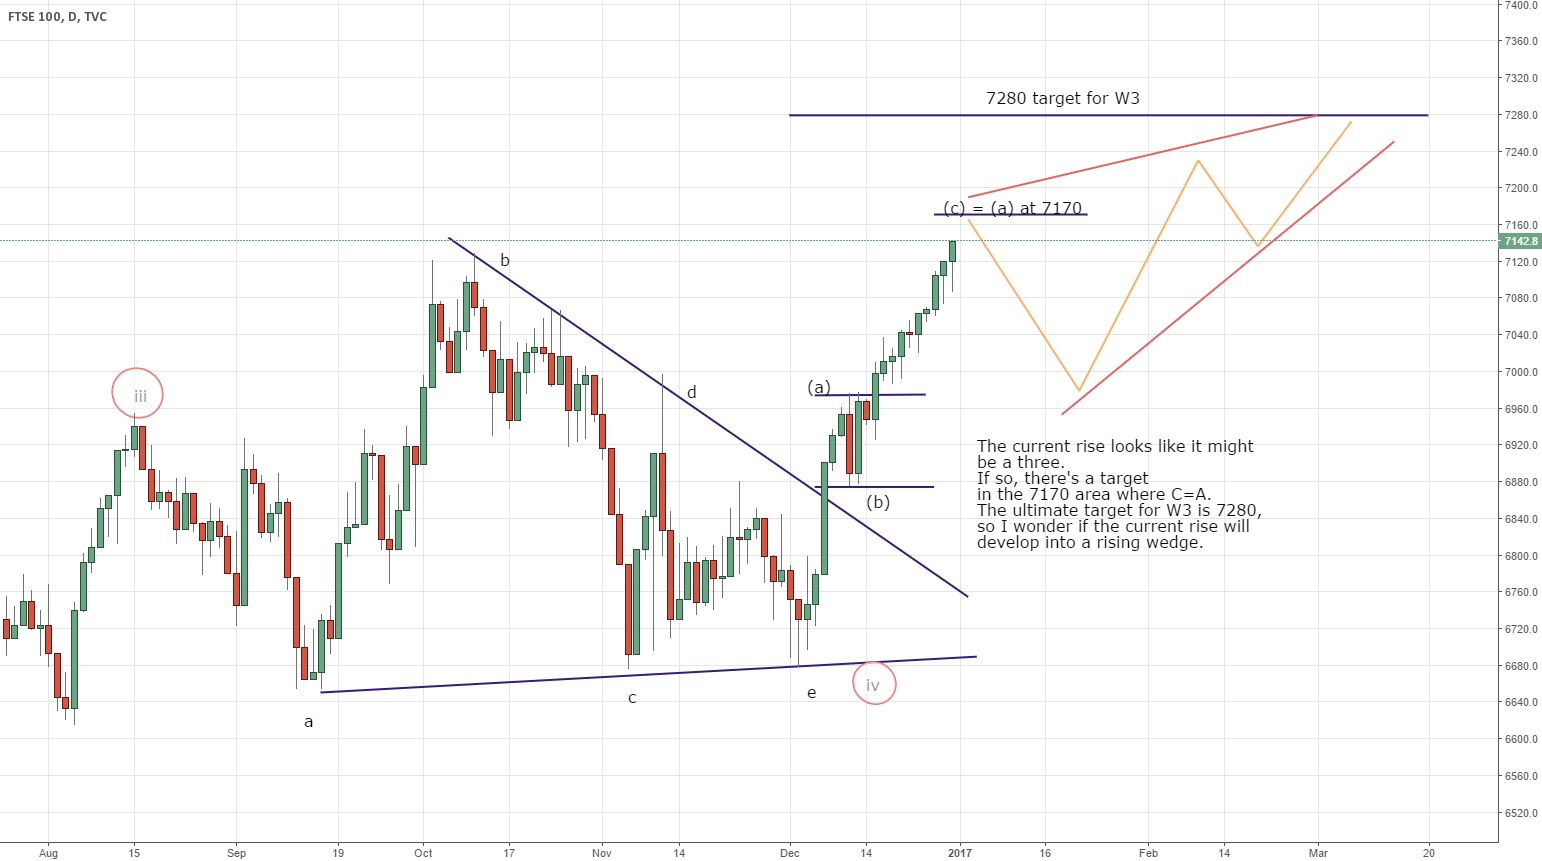 FTSE rising wedge developing?